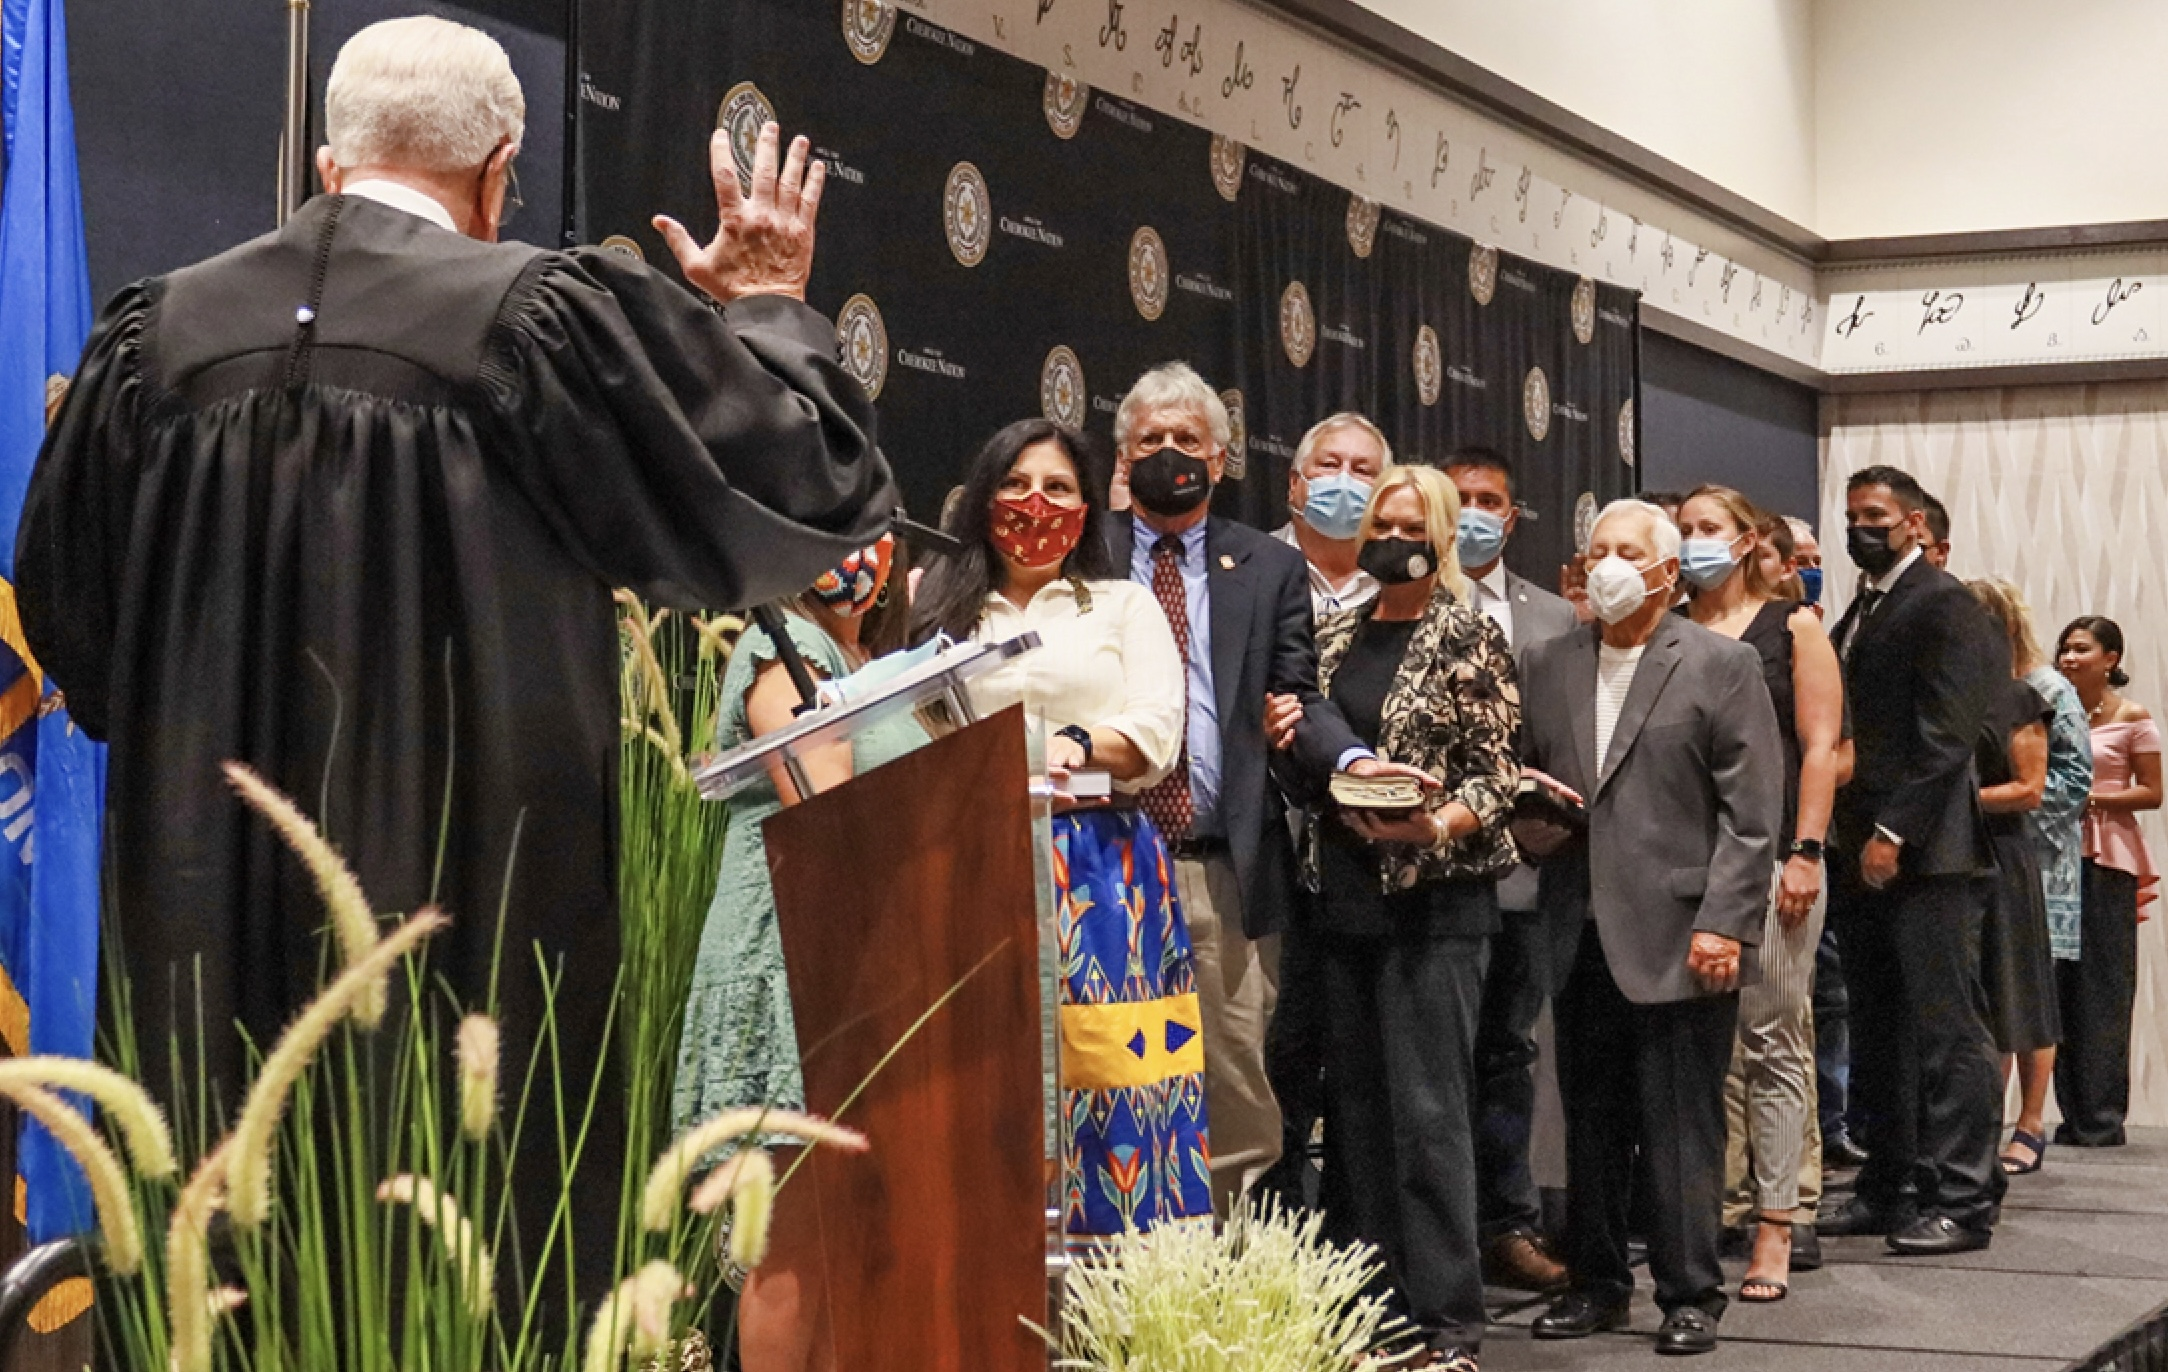 Nine Cherokee Nation Tribal Councilors were sworn into office Saturday as they pledged to preserve, protect and defend the Cherokee Nation Constitution during their four-year terms.